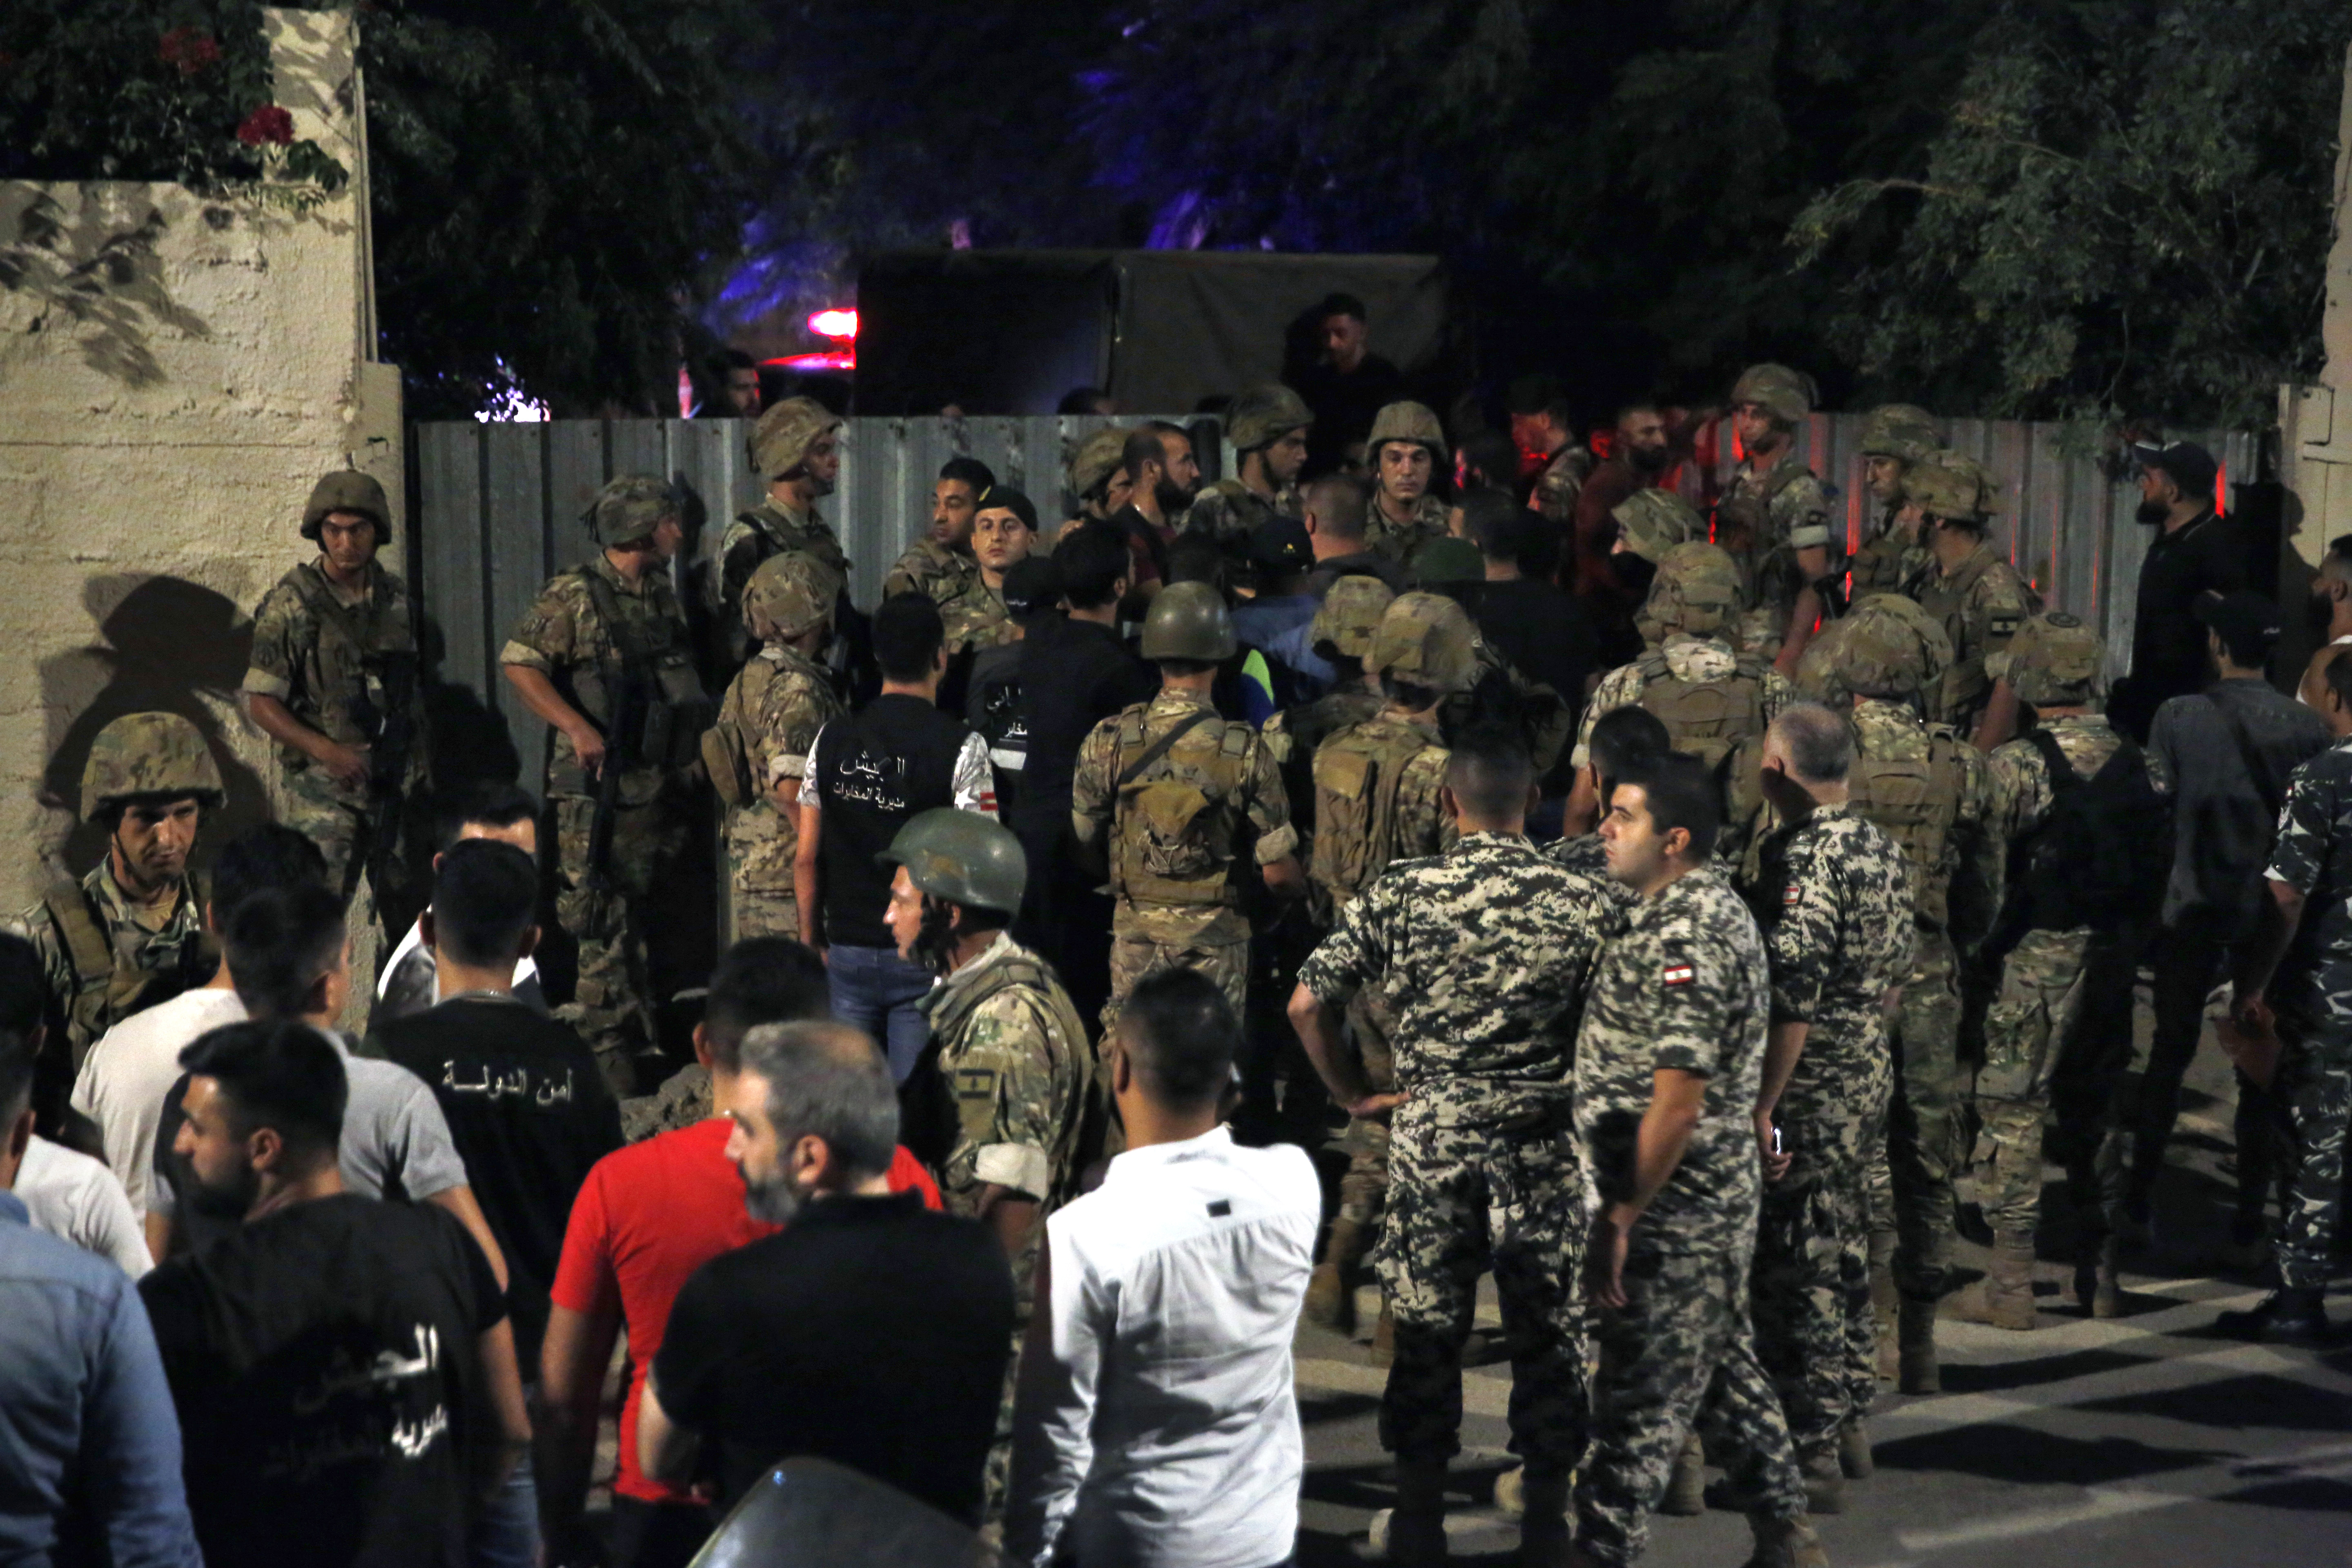 Lebanese security stand near the site where an Israeli drone was said to have crashed in a stronghold of the Lebanese Hezbollah group, in a southern suburb of Beirut, Lebanon, Sunday, Aug. 25, 2019. (Bilal Hussein/AP)